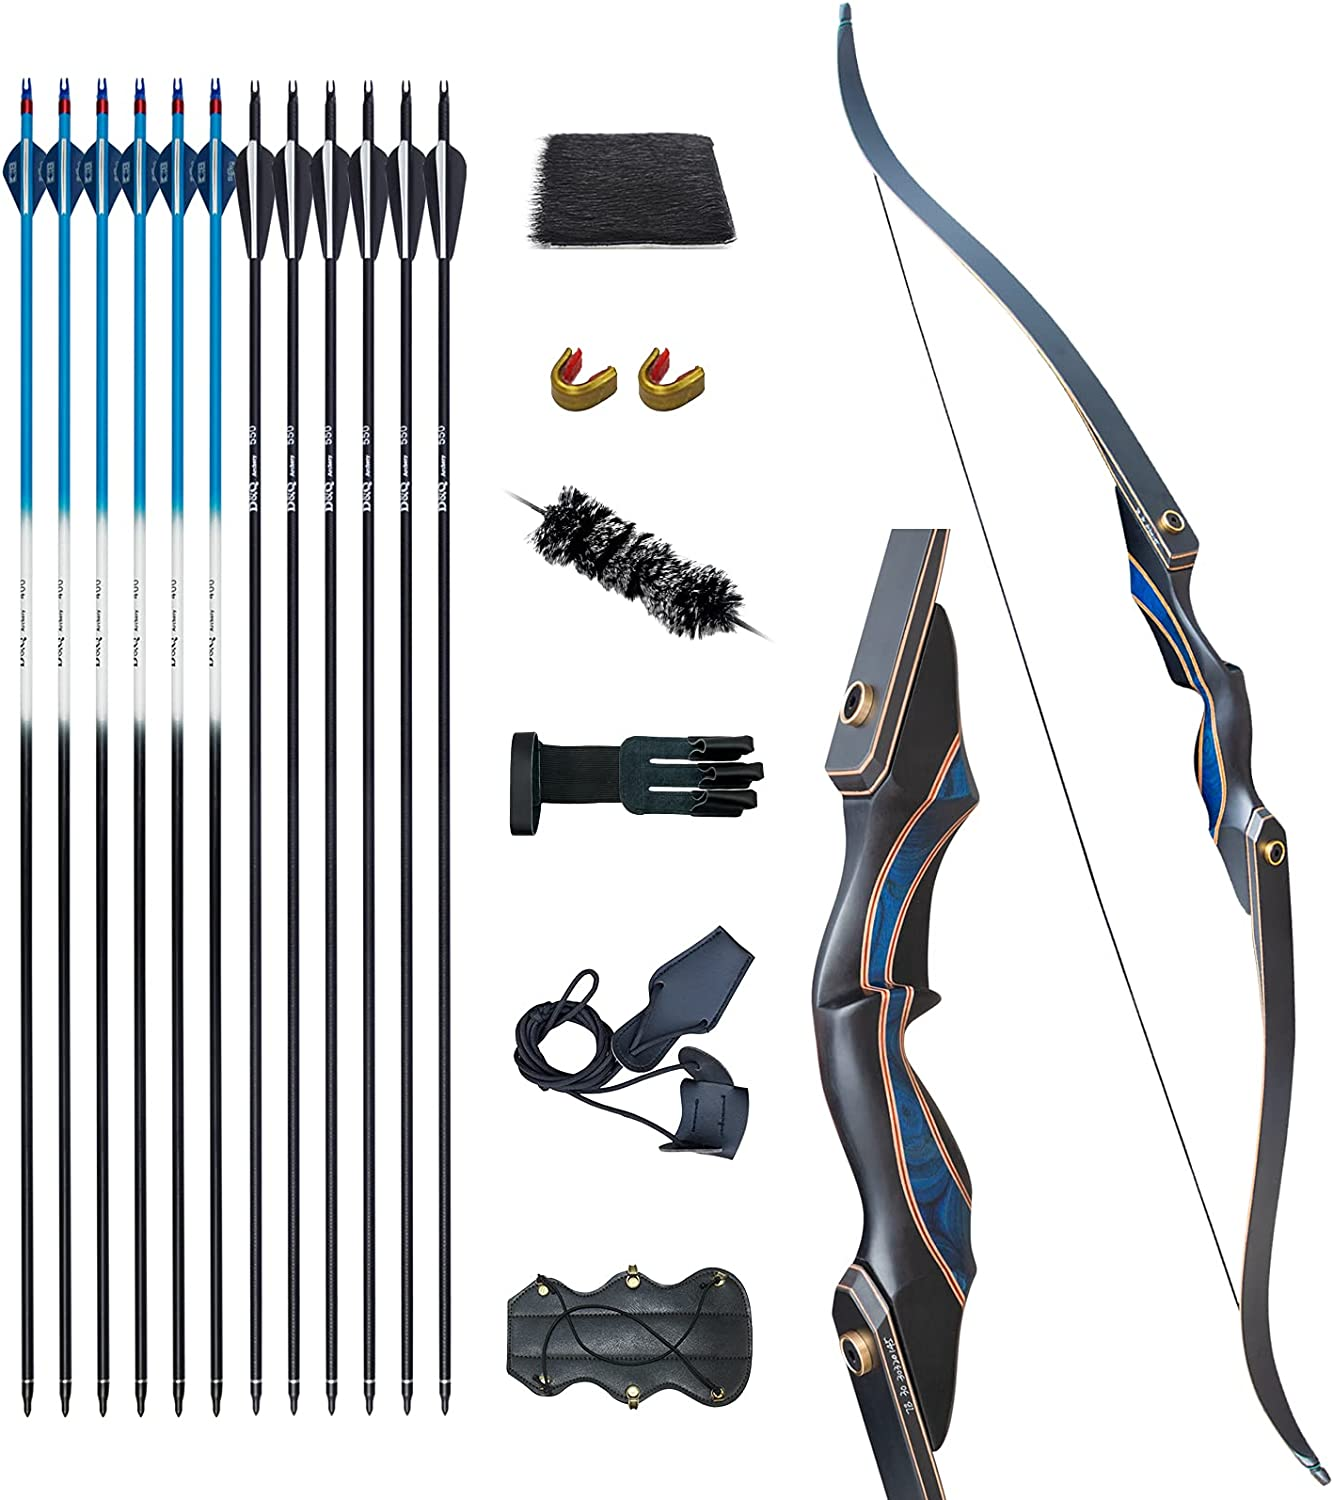 DQ Hunting Bow and Arrow for Bows Adults Archery Recurve Ad low-pricing Brand Cheap Sale Venue Set